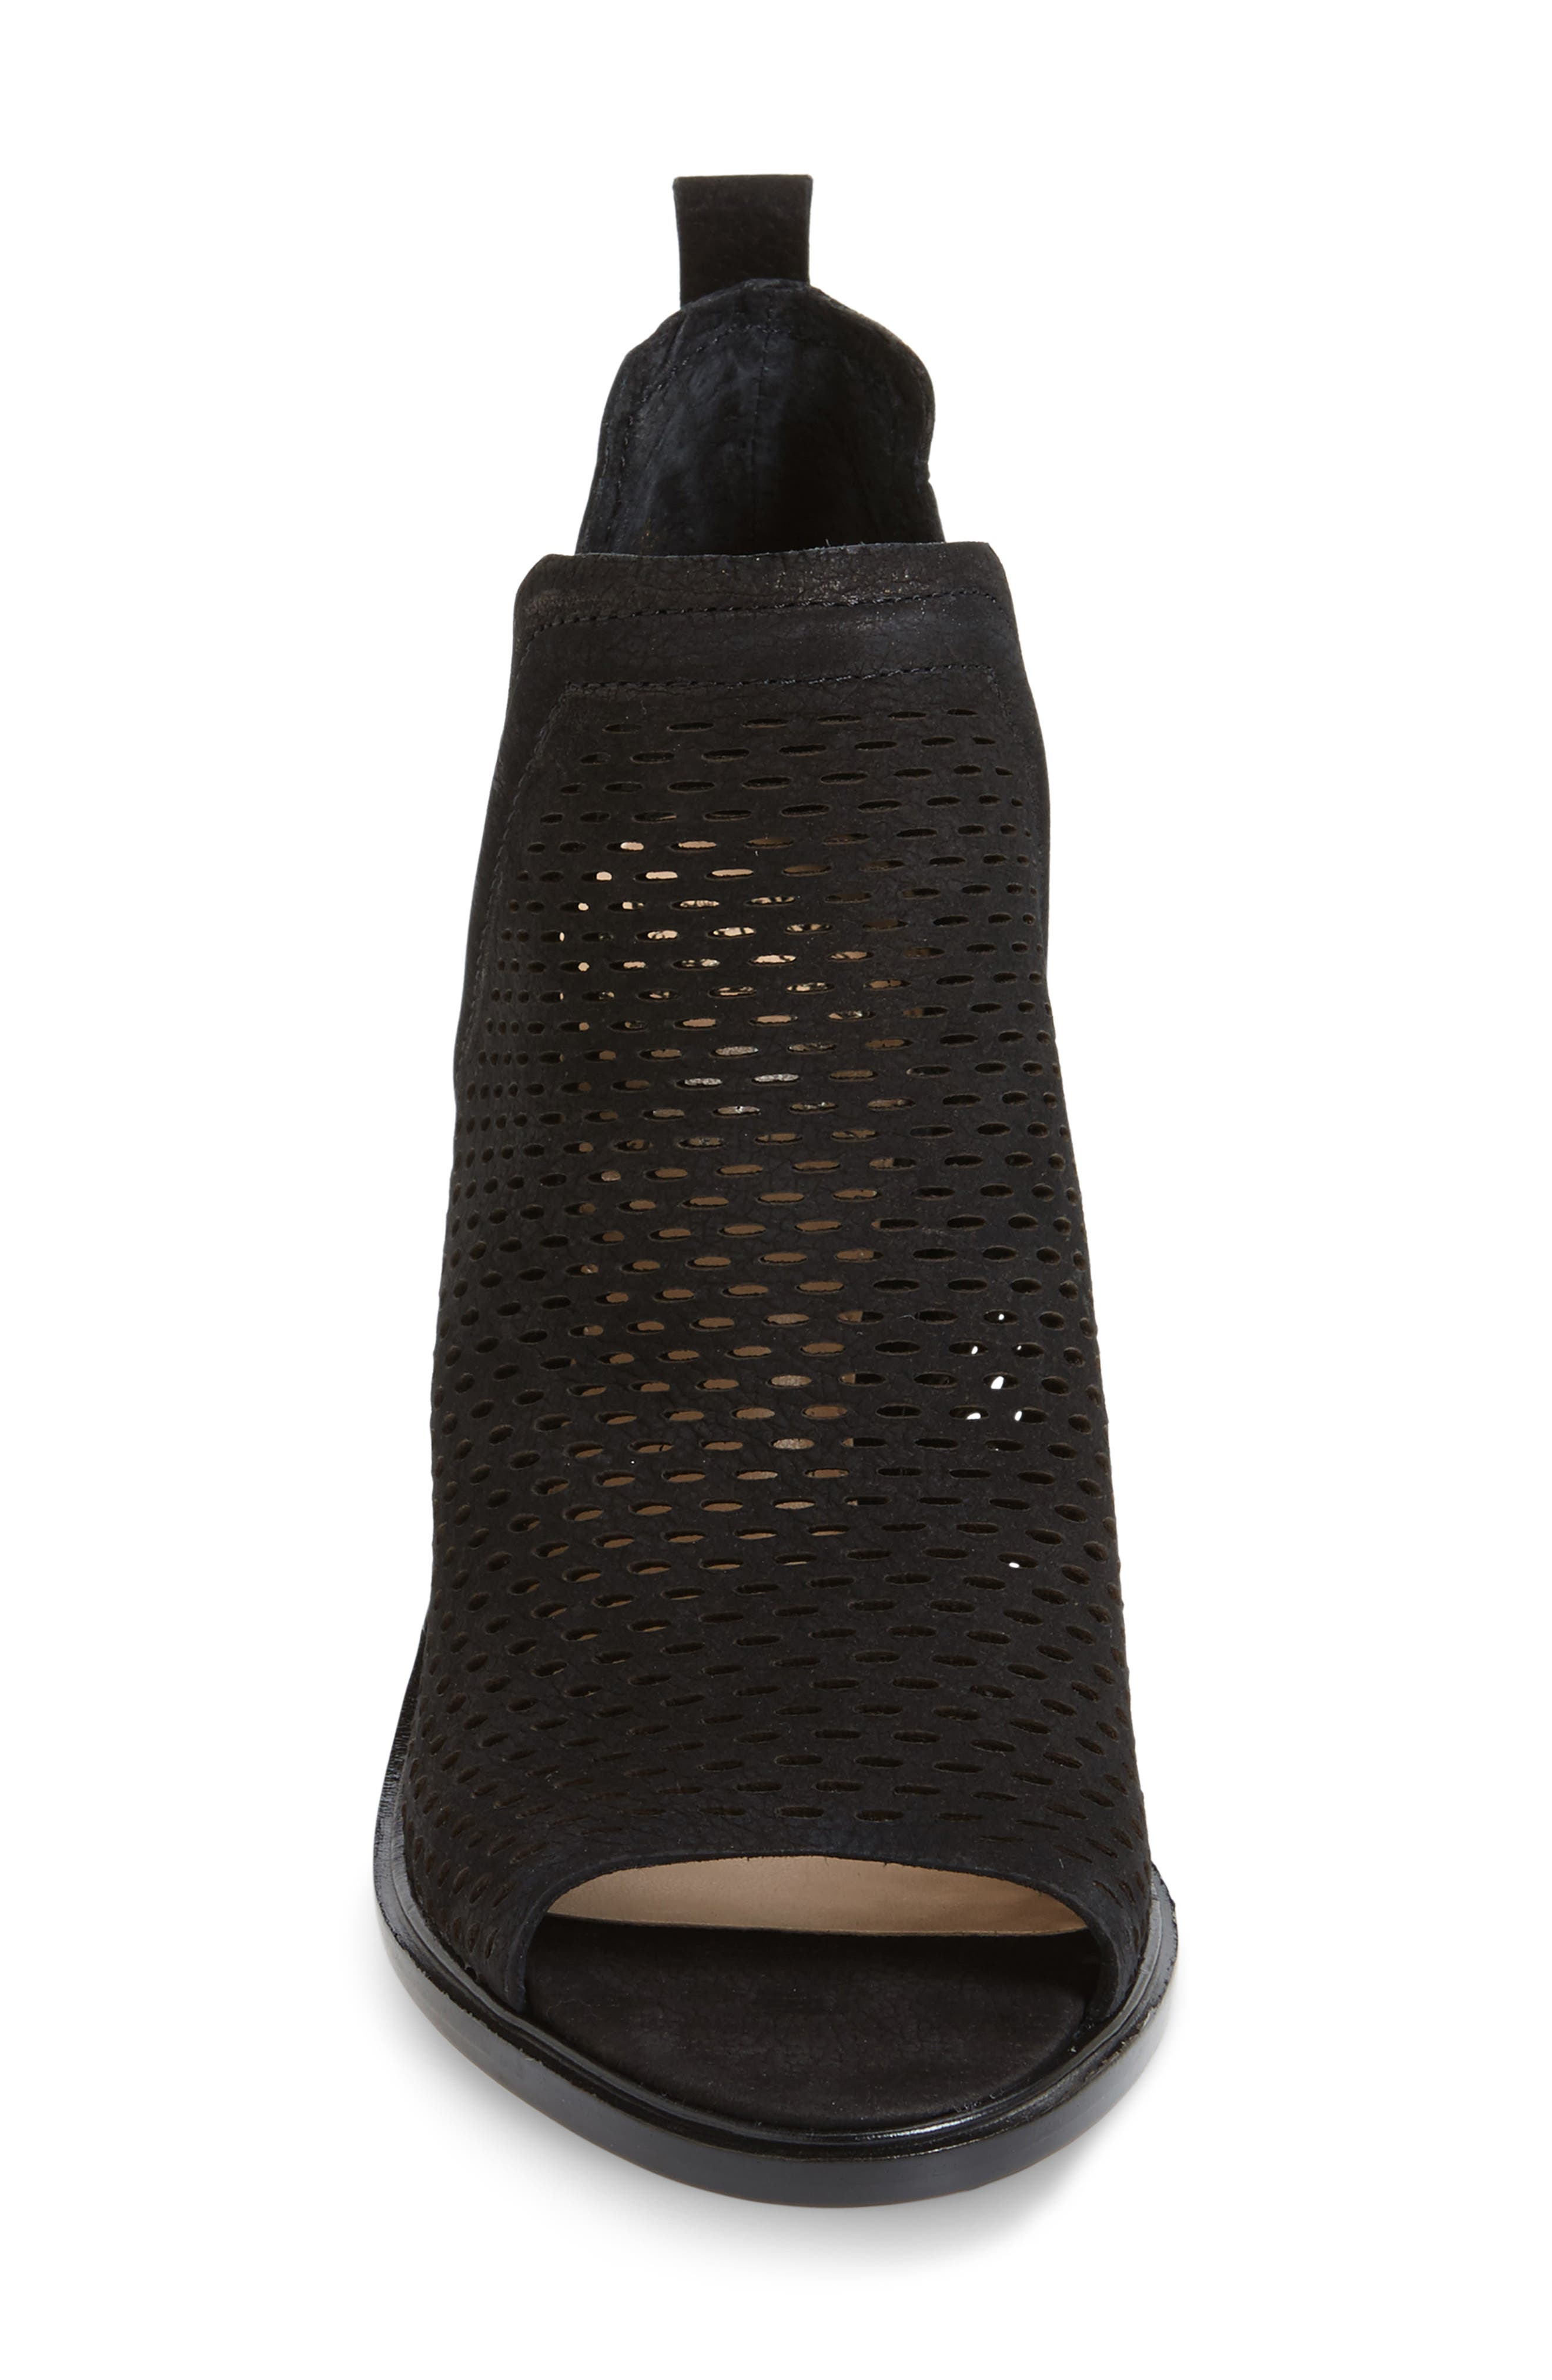 Kensa Peep Toe Bootie,                             Alternate thumbnail 3, color,                             001